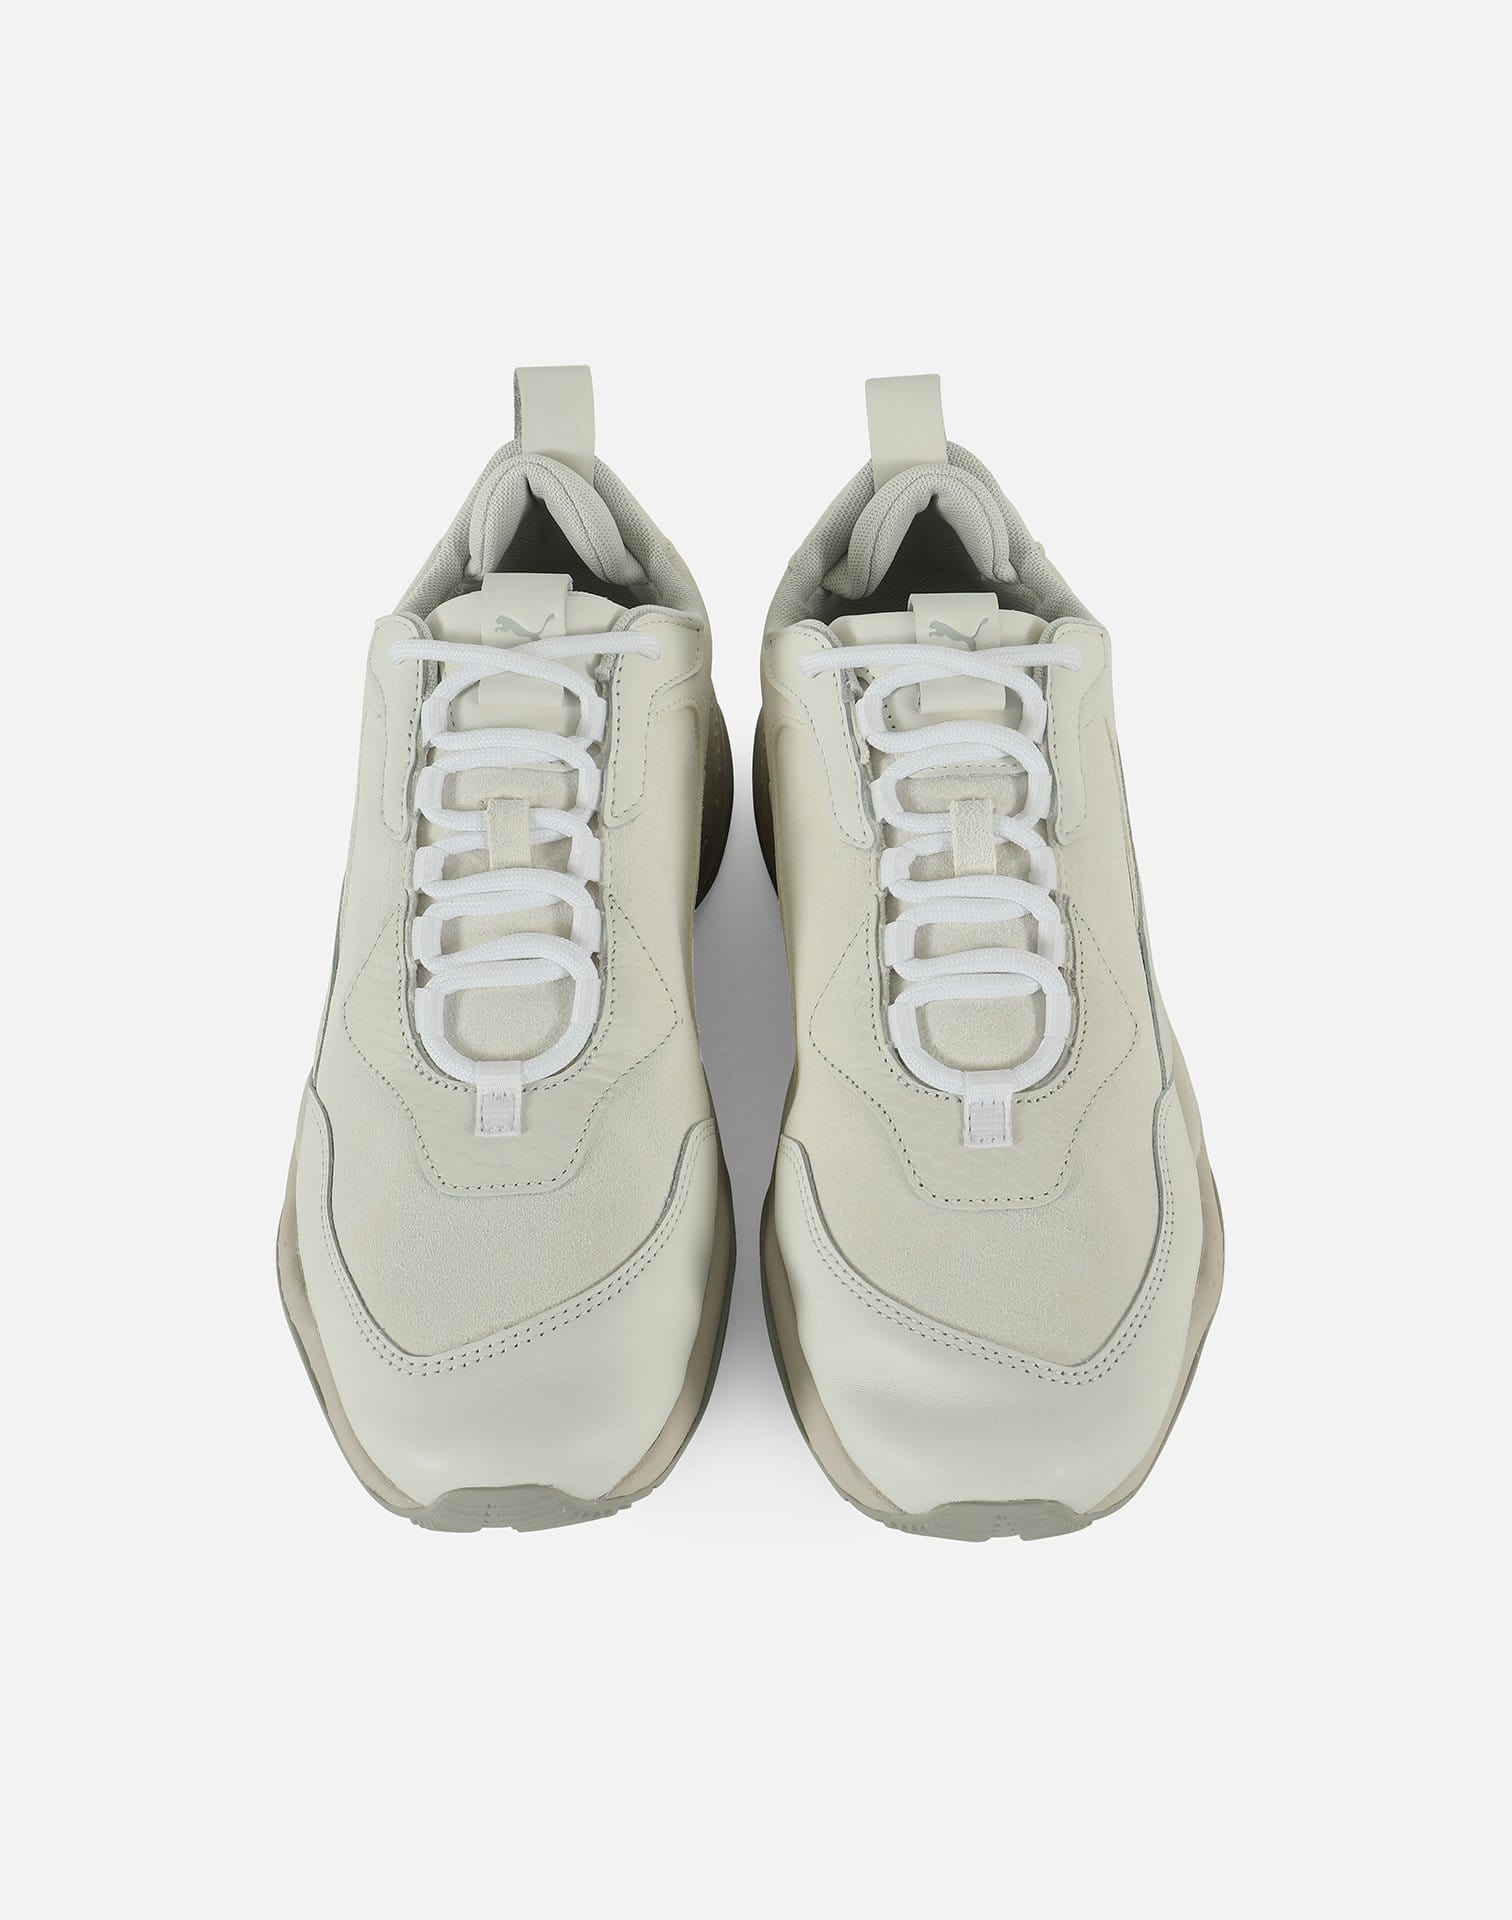 PUMA Men's Thunder Desert